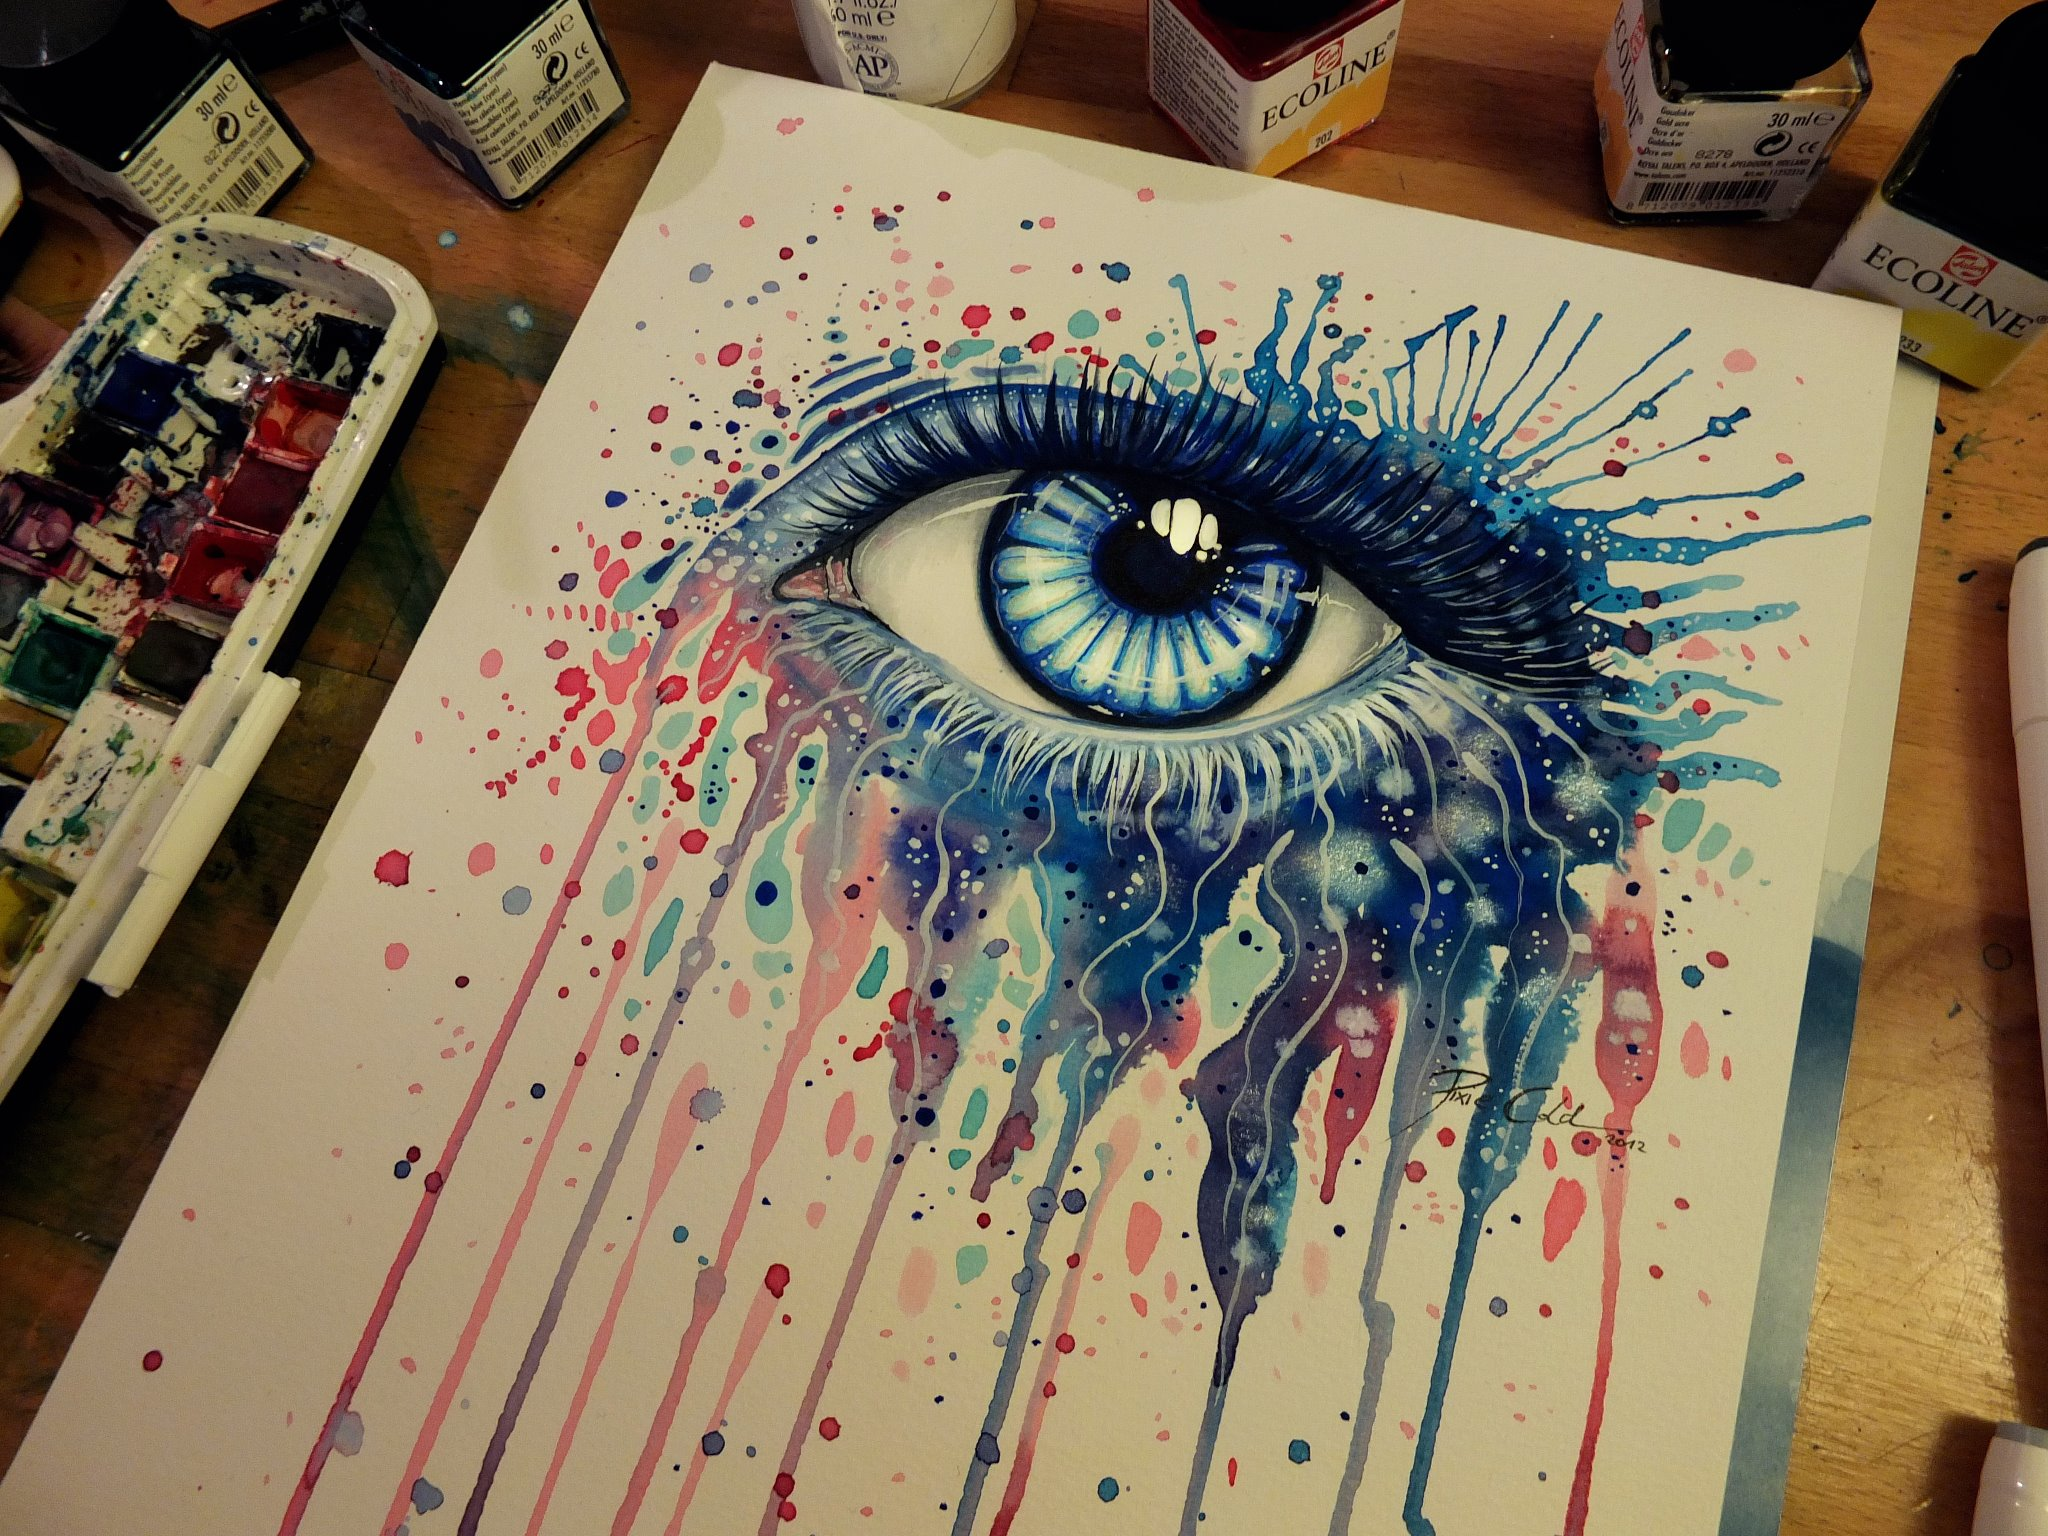 Amazing emessy creative works for Your paintings are amazing